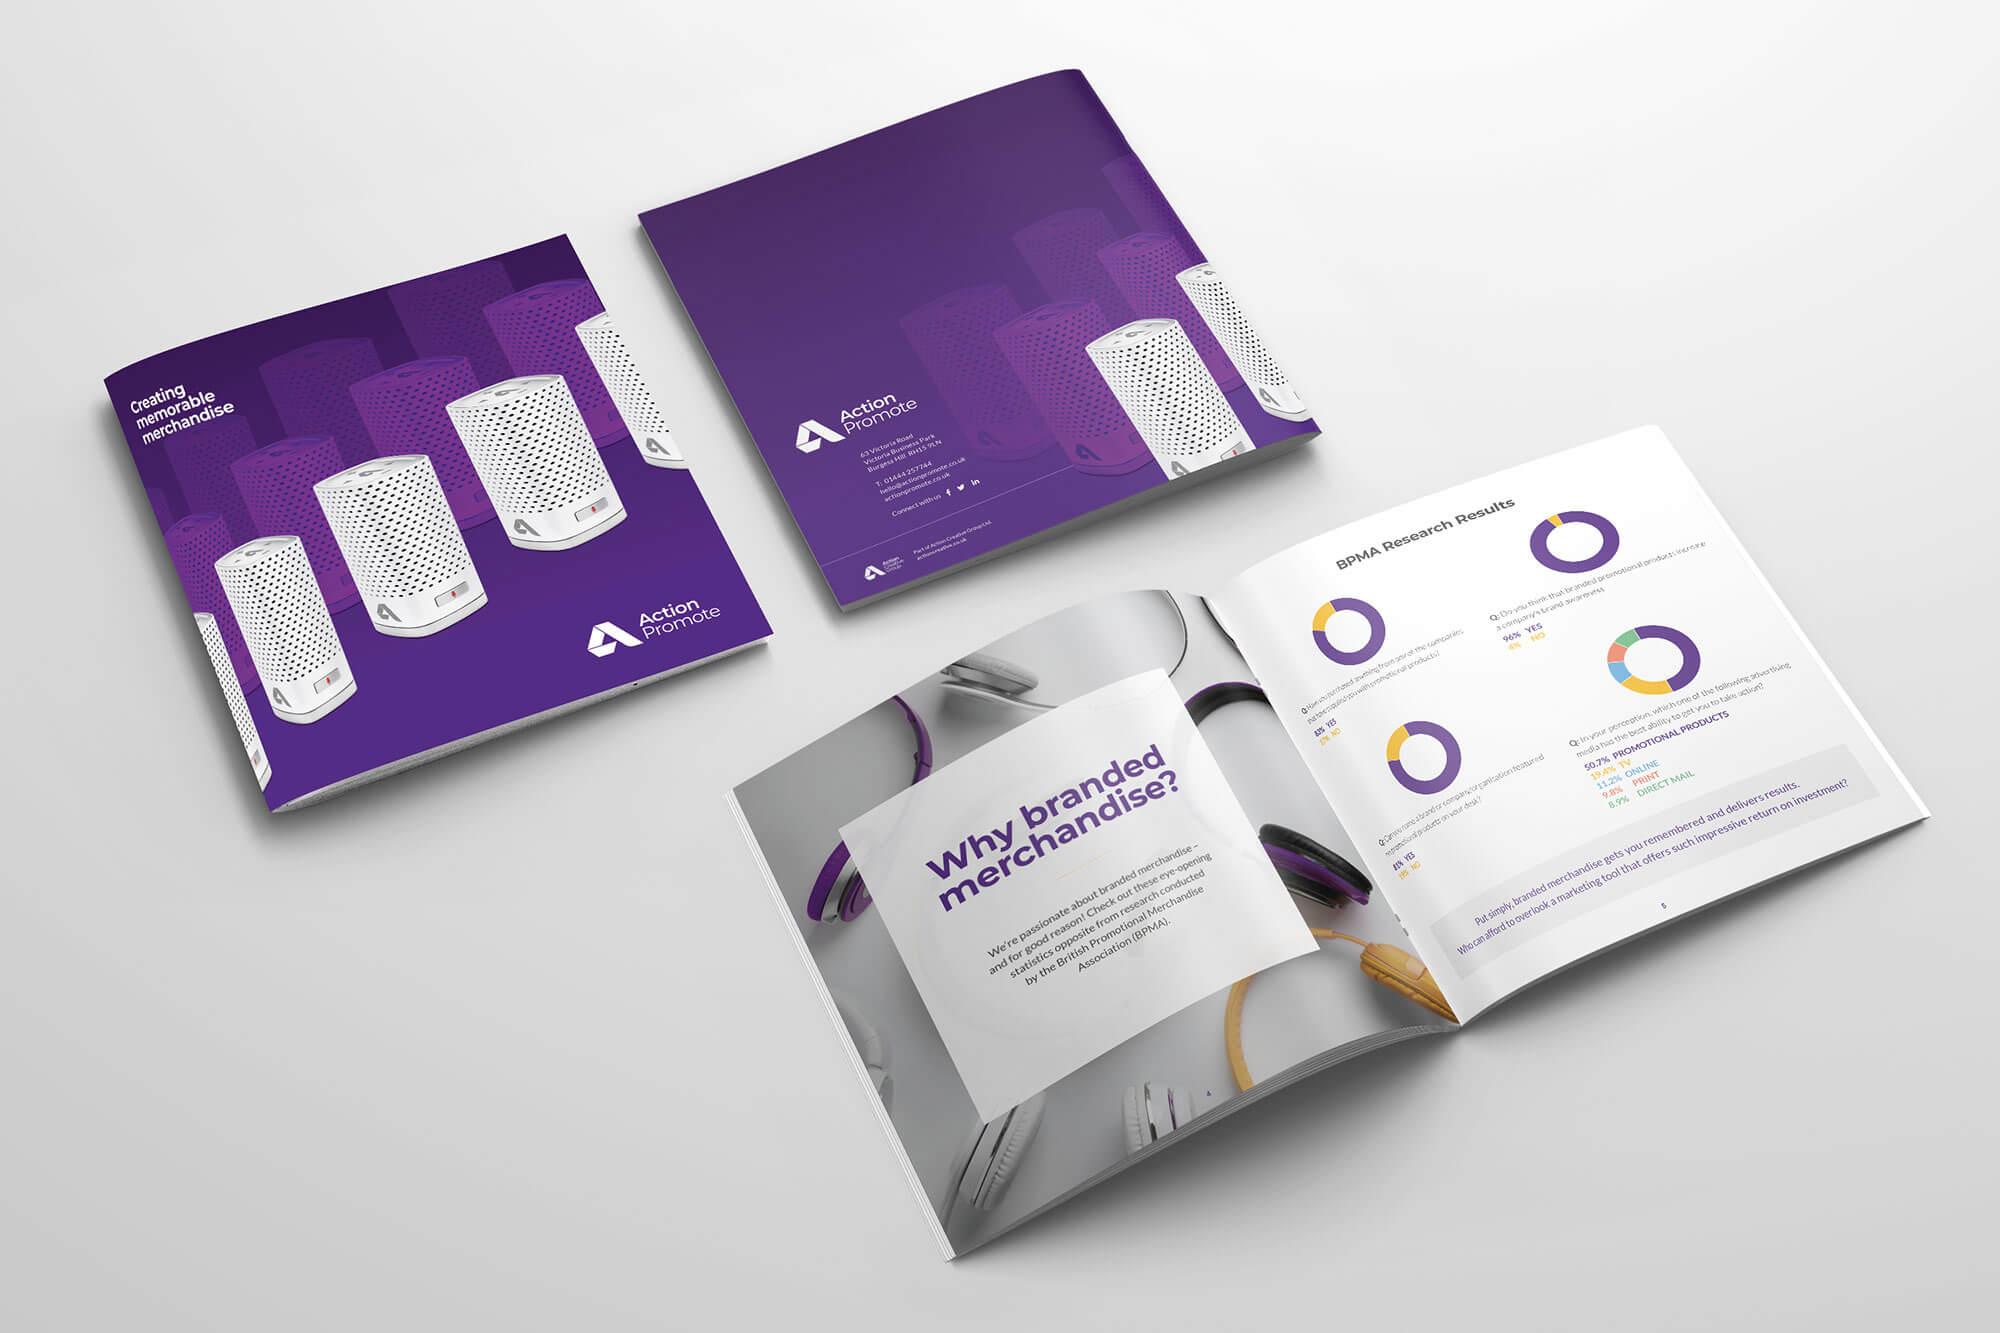 Action Promote Overview Brochure Design & Print